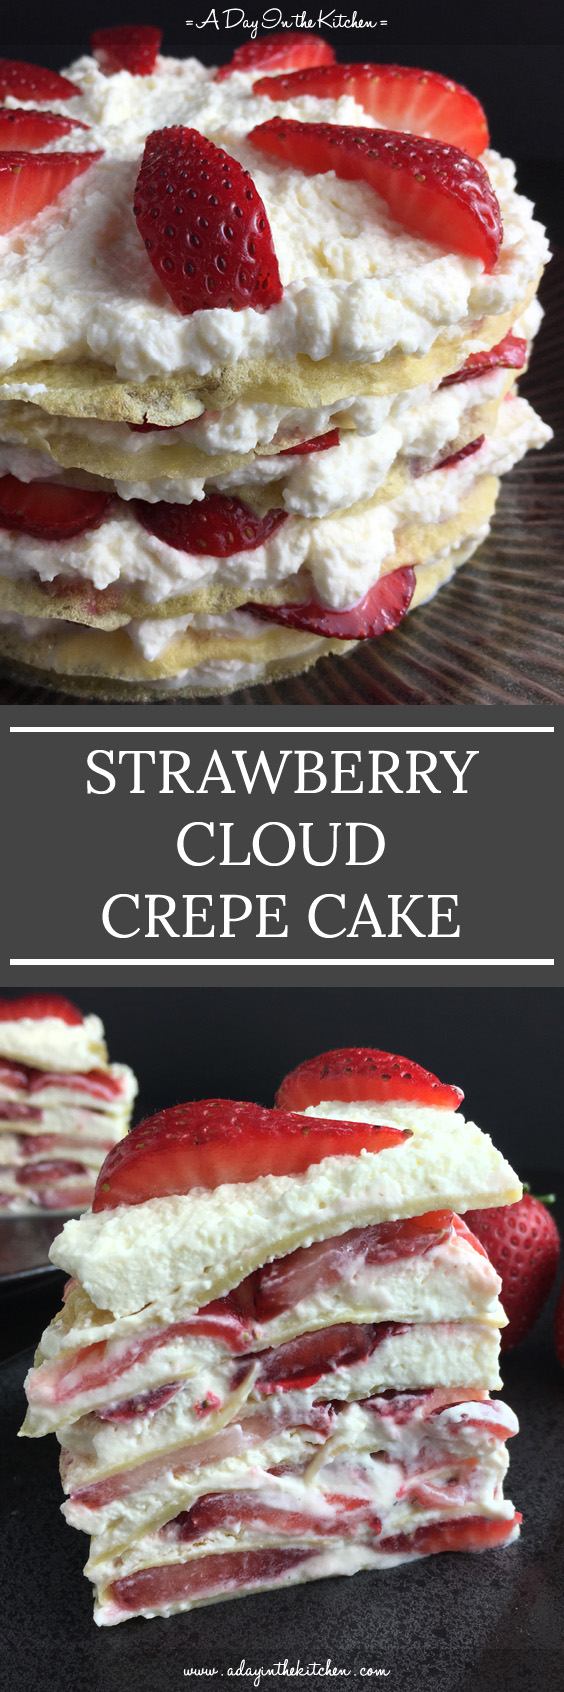 A deliciously light and refreshing dessert, Strawberry Cloud Crepe Cake is gluten-free with no refined sugar. A fabulous way to enjoy ripe summer berries. #strawberries #crepecake #glutenfreecake #whippedcream #strawberrycrepecake #glutenfree #desserts